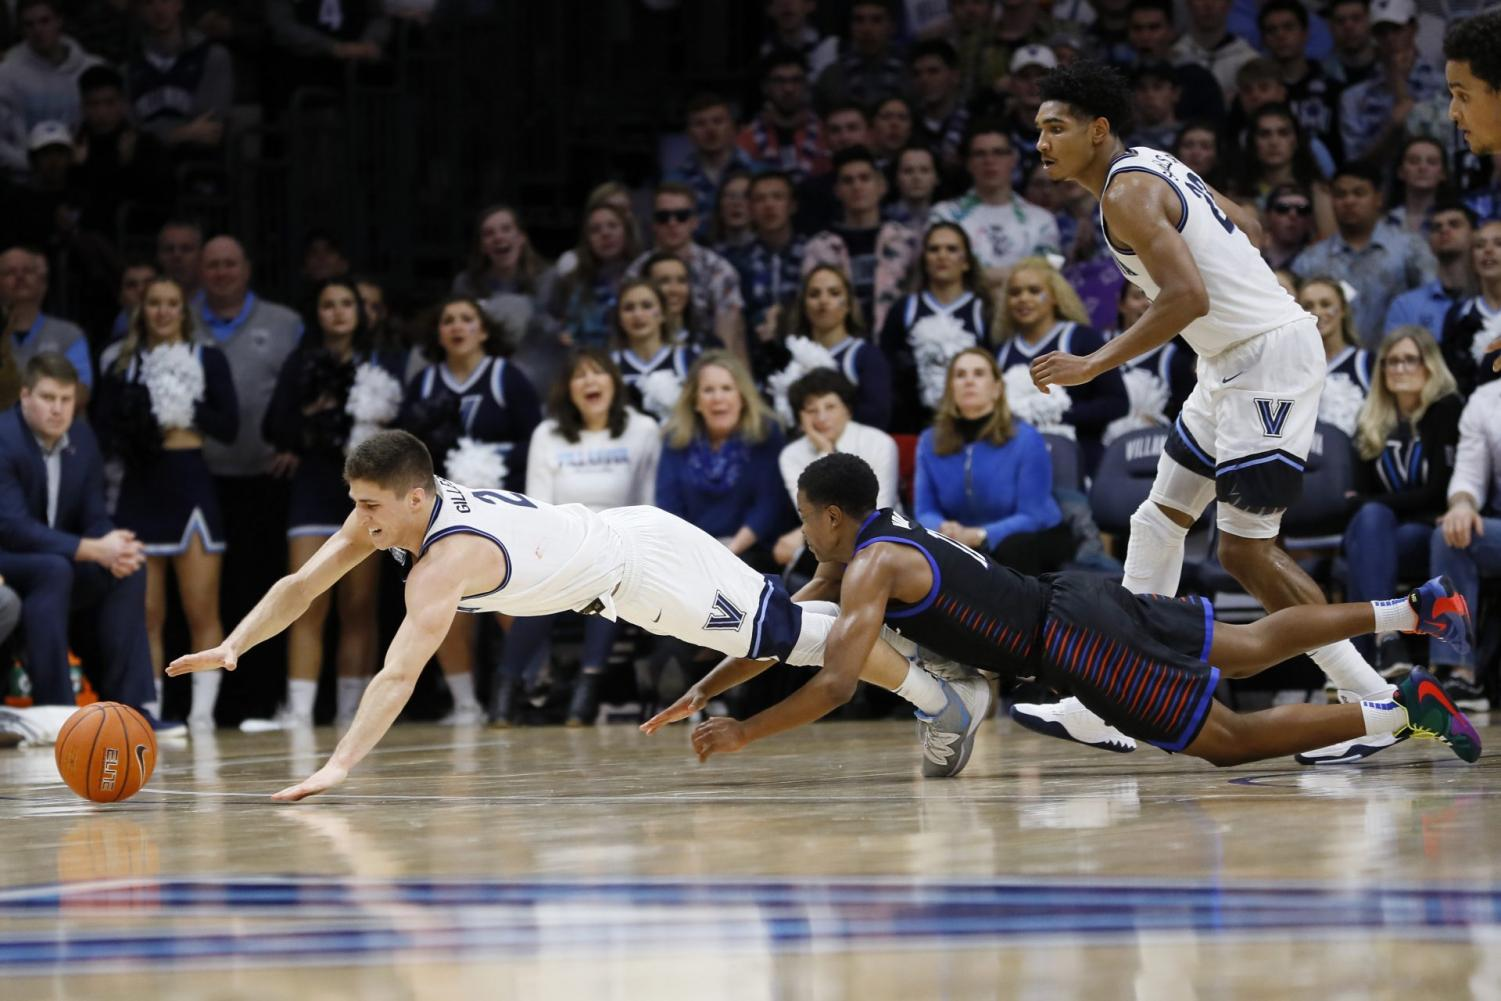 Villanova's Collin Gillespie dives for a loose ball with DePaul's Charlie Moore during the second half in their game on Tuesday night in Villanova, Pa. Villanova won 79-75 in overtime.